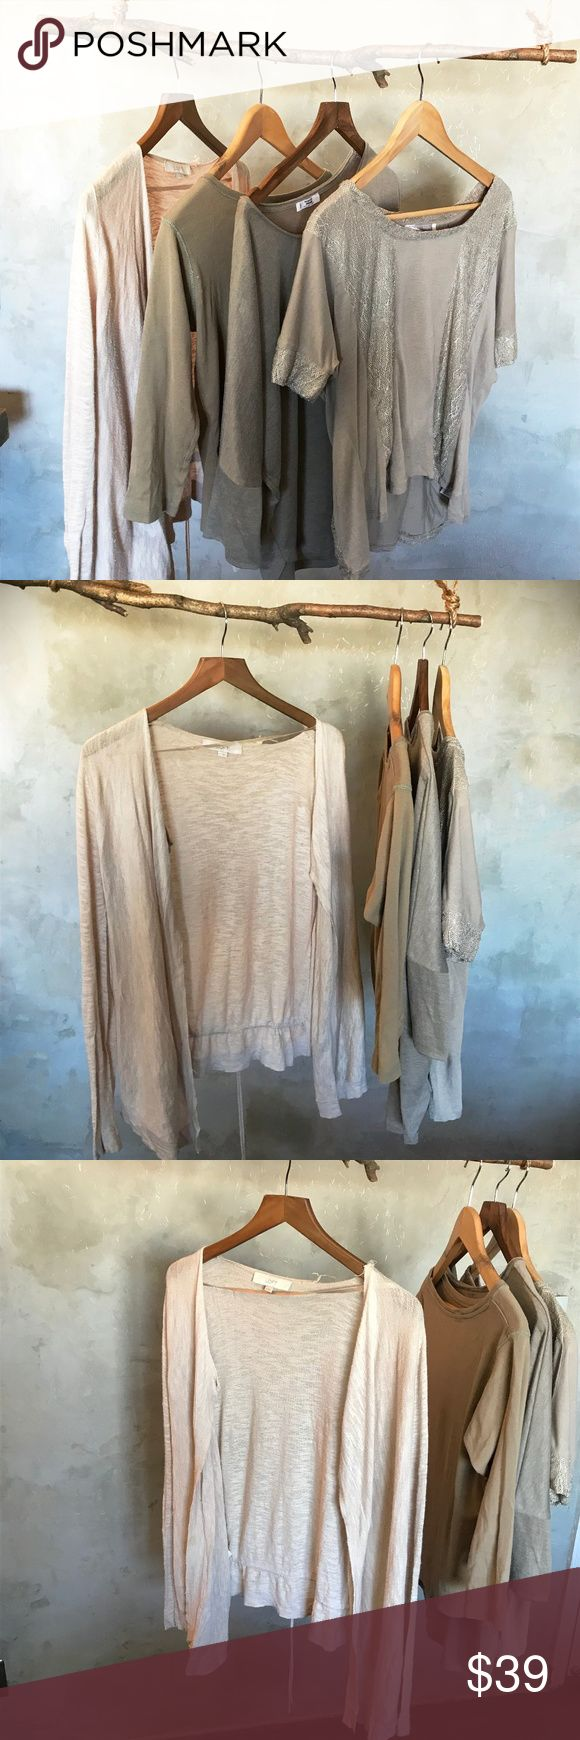 Bundle of Tees and cardigan casual earth tone 3 Tees and one cardigan, casual, neutral, earth tone tops. 1 LOFT lightweight cardigan size M cotton blend 1 Sfera solid cotton boatneck 3/4 sleeve tee size L 1 Forever 21 (Love 21) mid sleeve, loose top with sparkly panels size L rayon blend 1 Mango XL looser fit top with 3/4 sleeves and curled hem neckline fabric unknown  Slight piling. Good used condition. LOFT Tops Tees - Long Sleeve